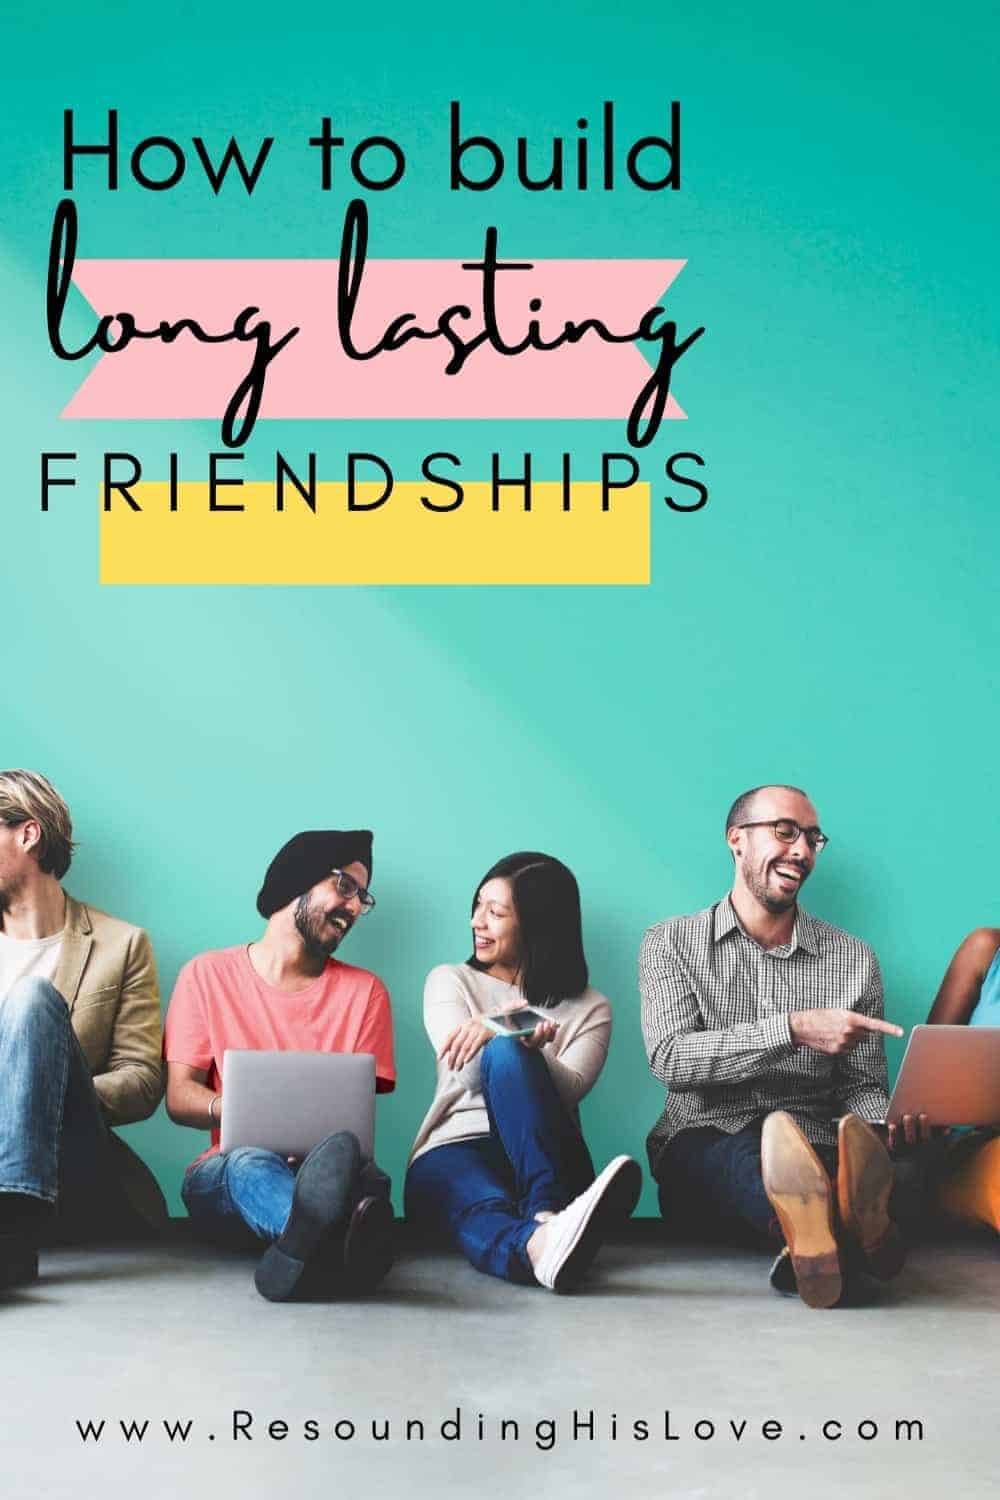 a group of men and women sitting against a teal background with text What Does the Bible Say About Friendship?